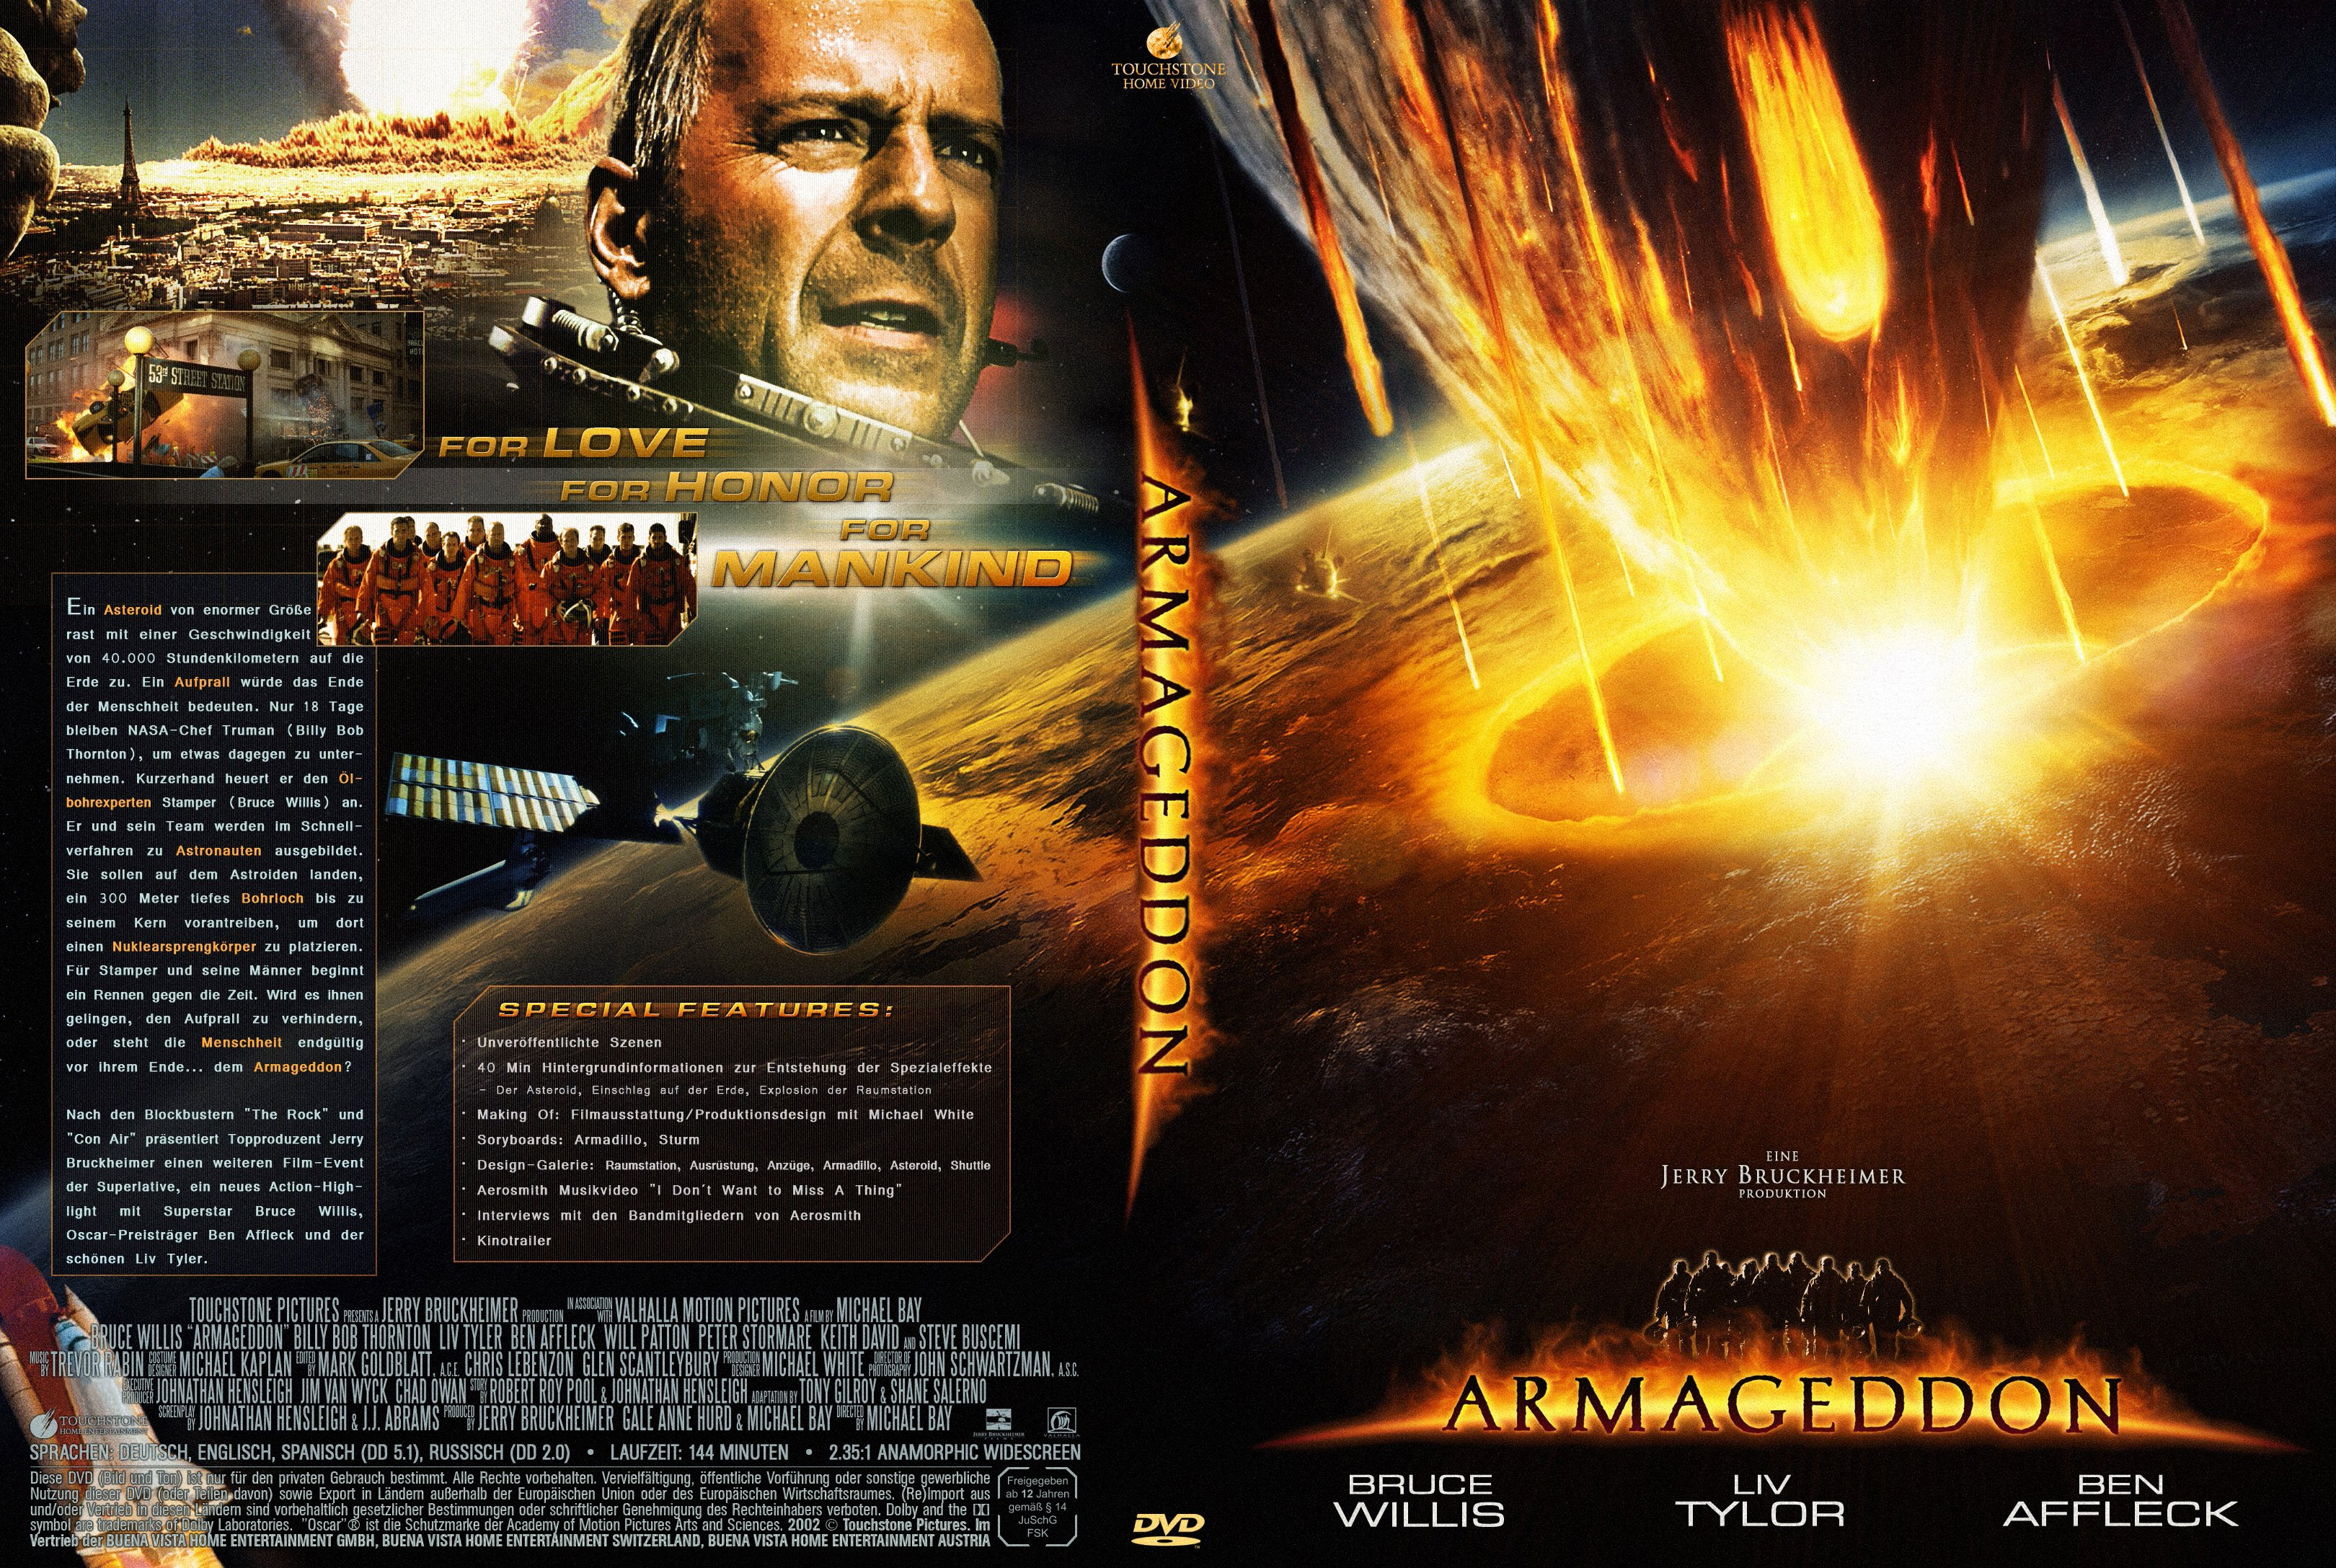 analytical view of armageddon movie